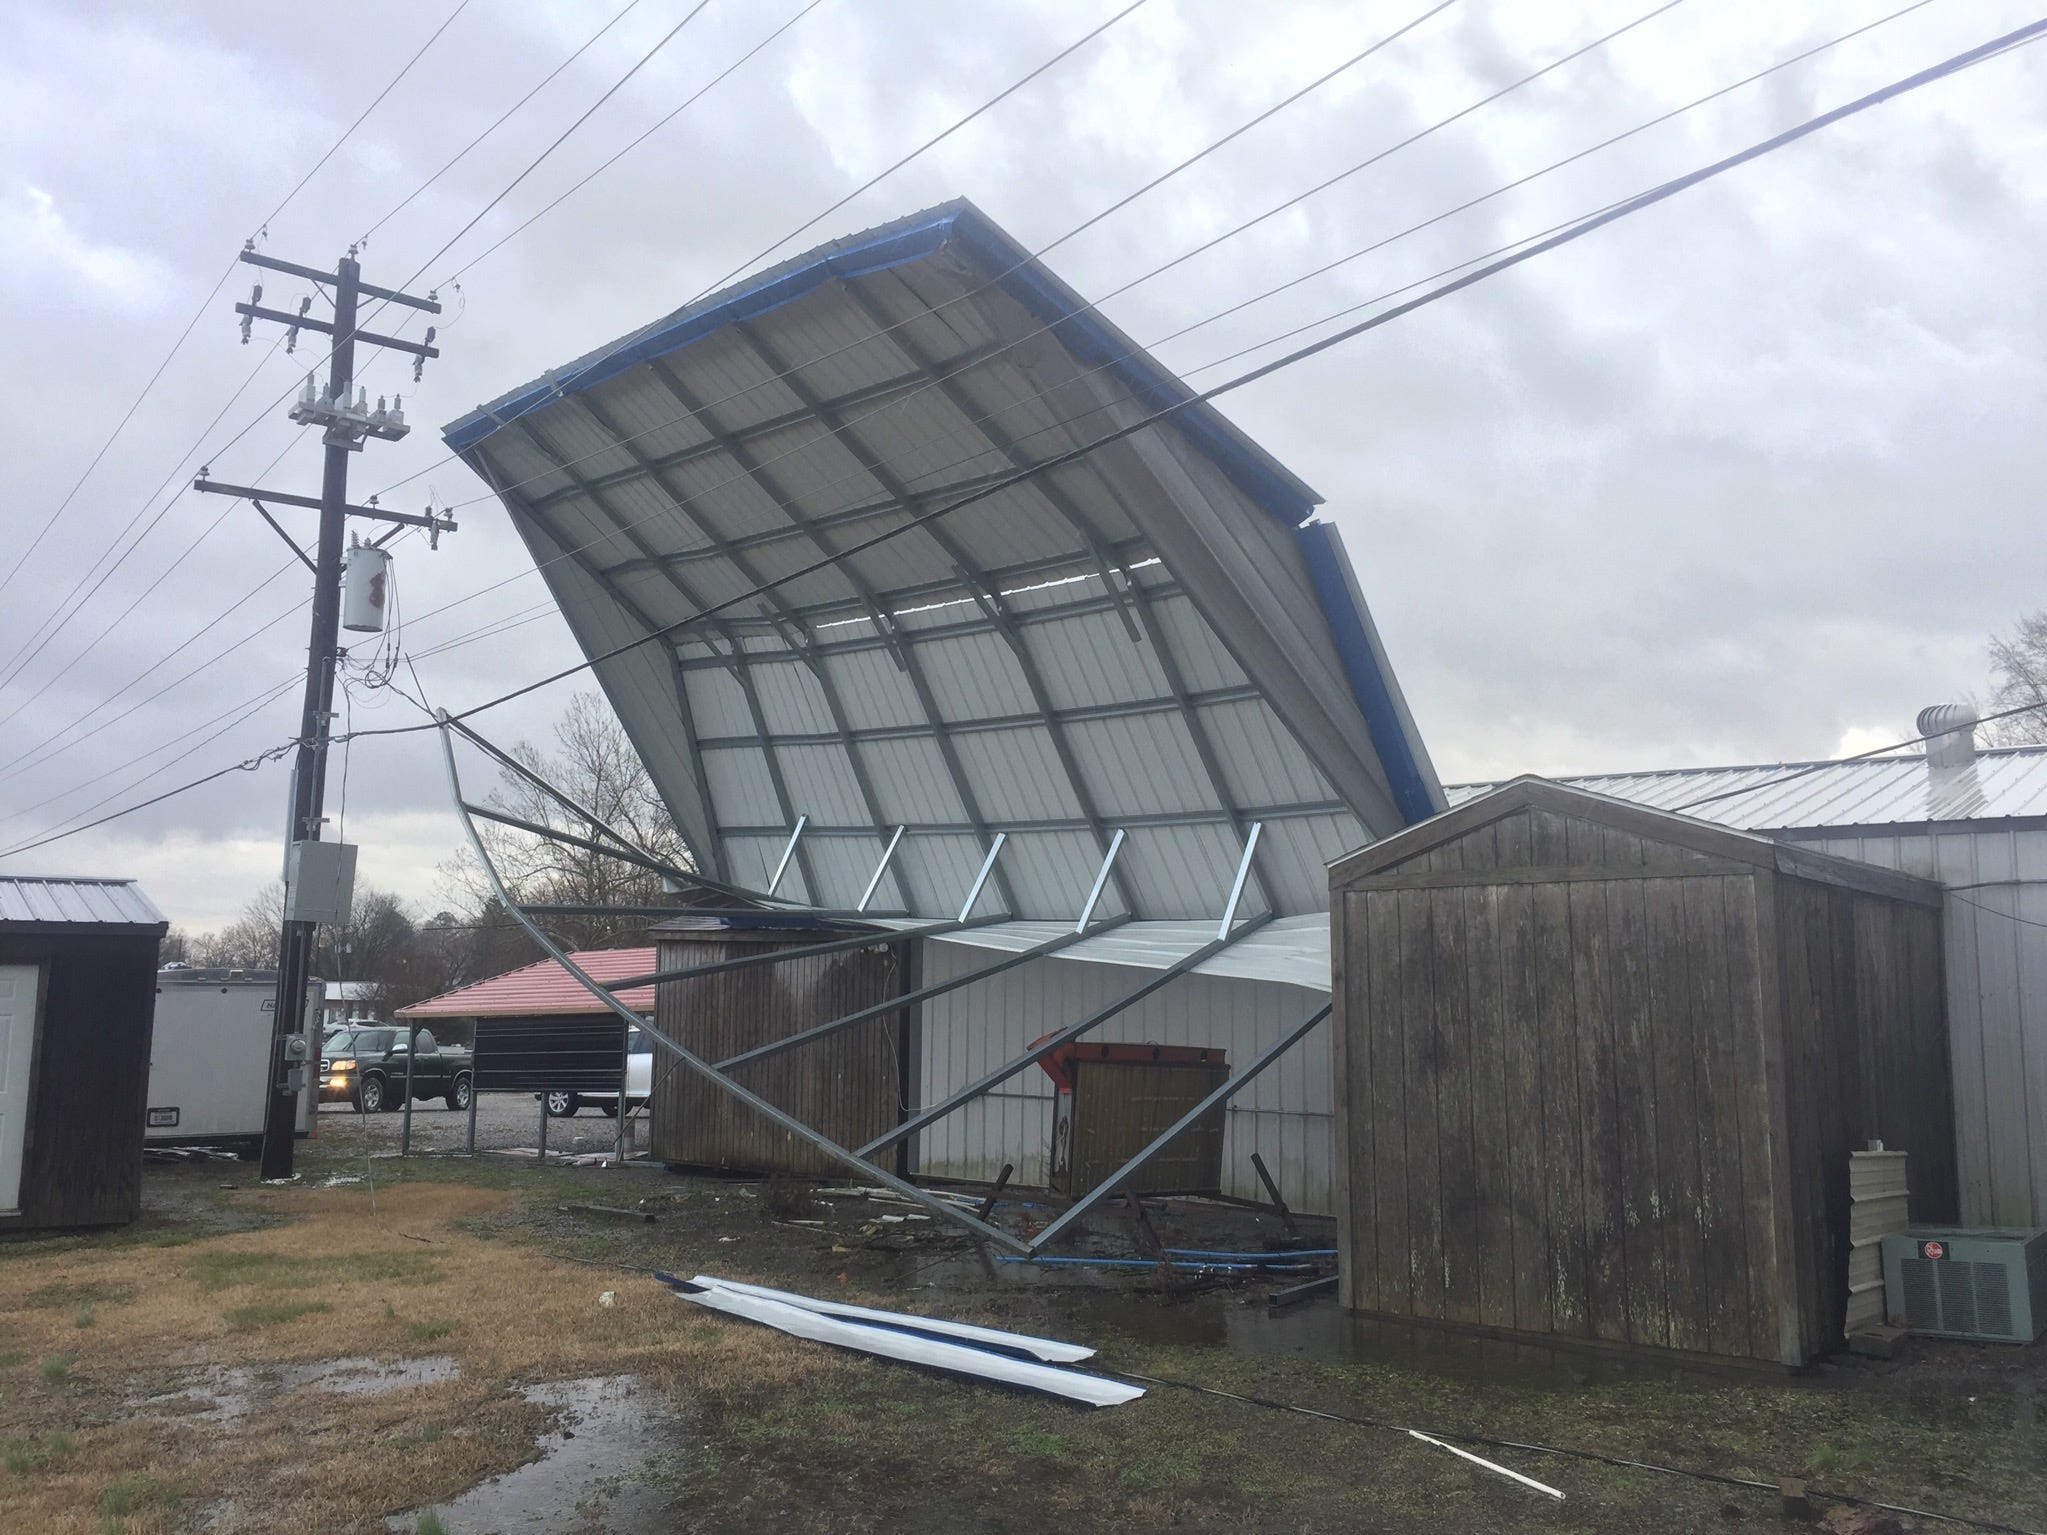 Damage seen at the Eagle Buildings on US 60 in Waverly, Kentucky. NKU officials are on the scene trying to deal with power issues caused by the damage.